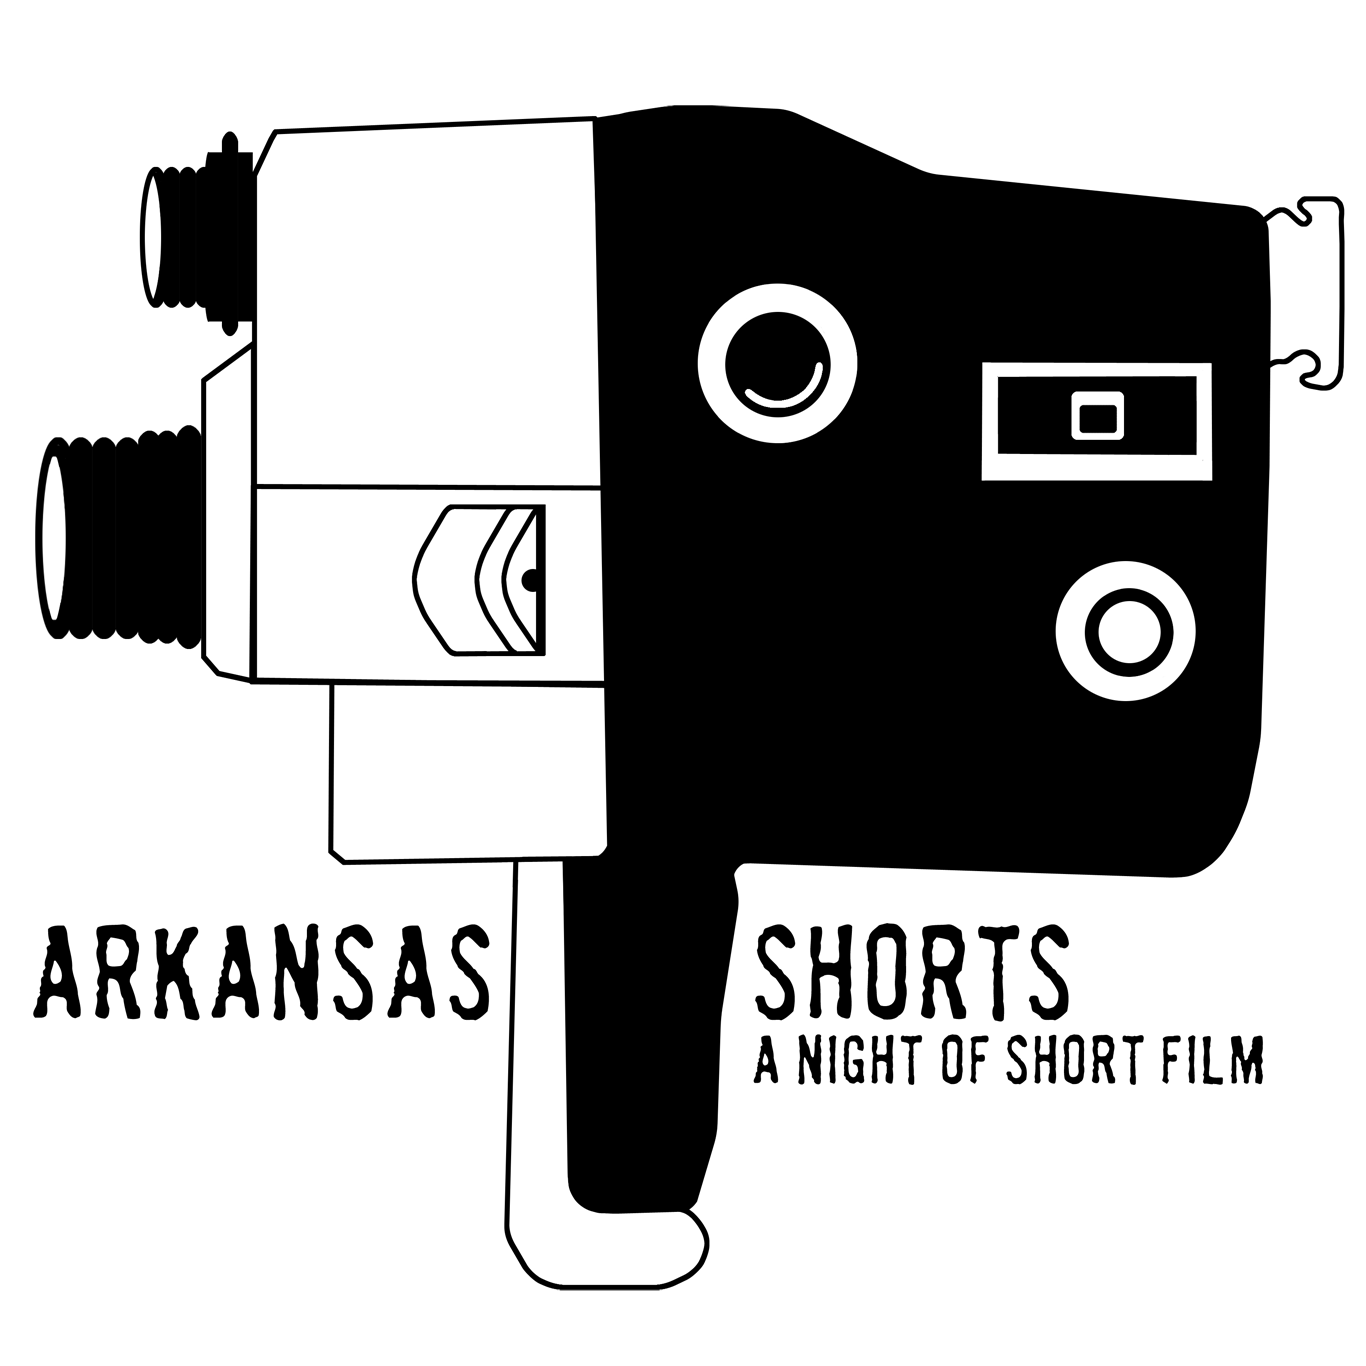 Arkansas Shorts: A Night of Short Film logo